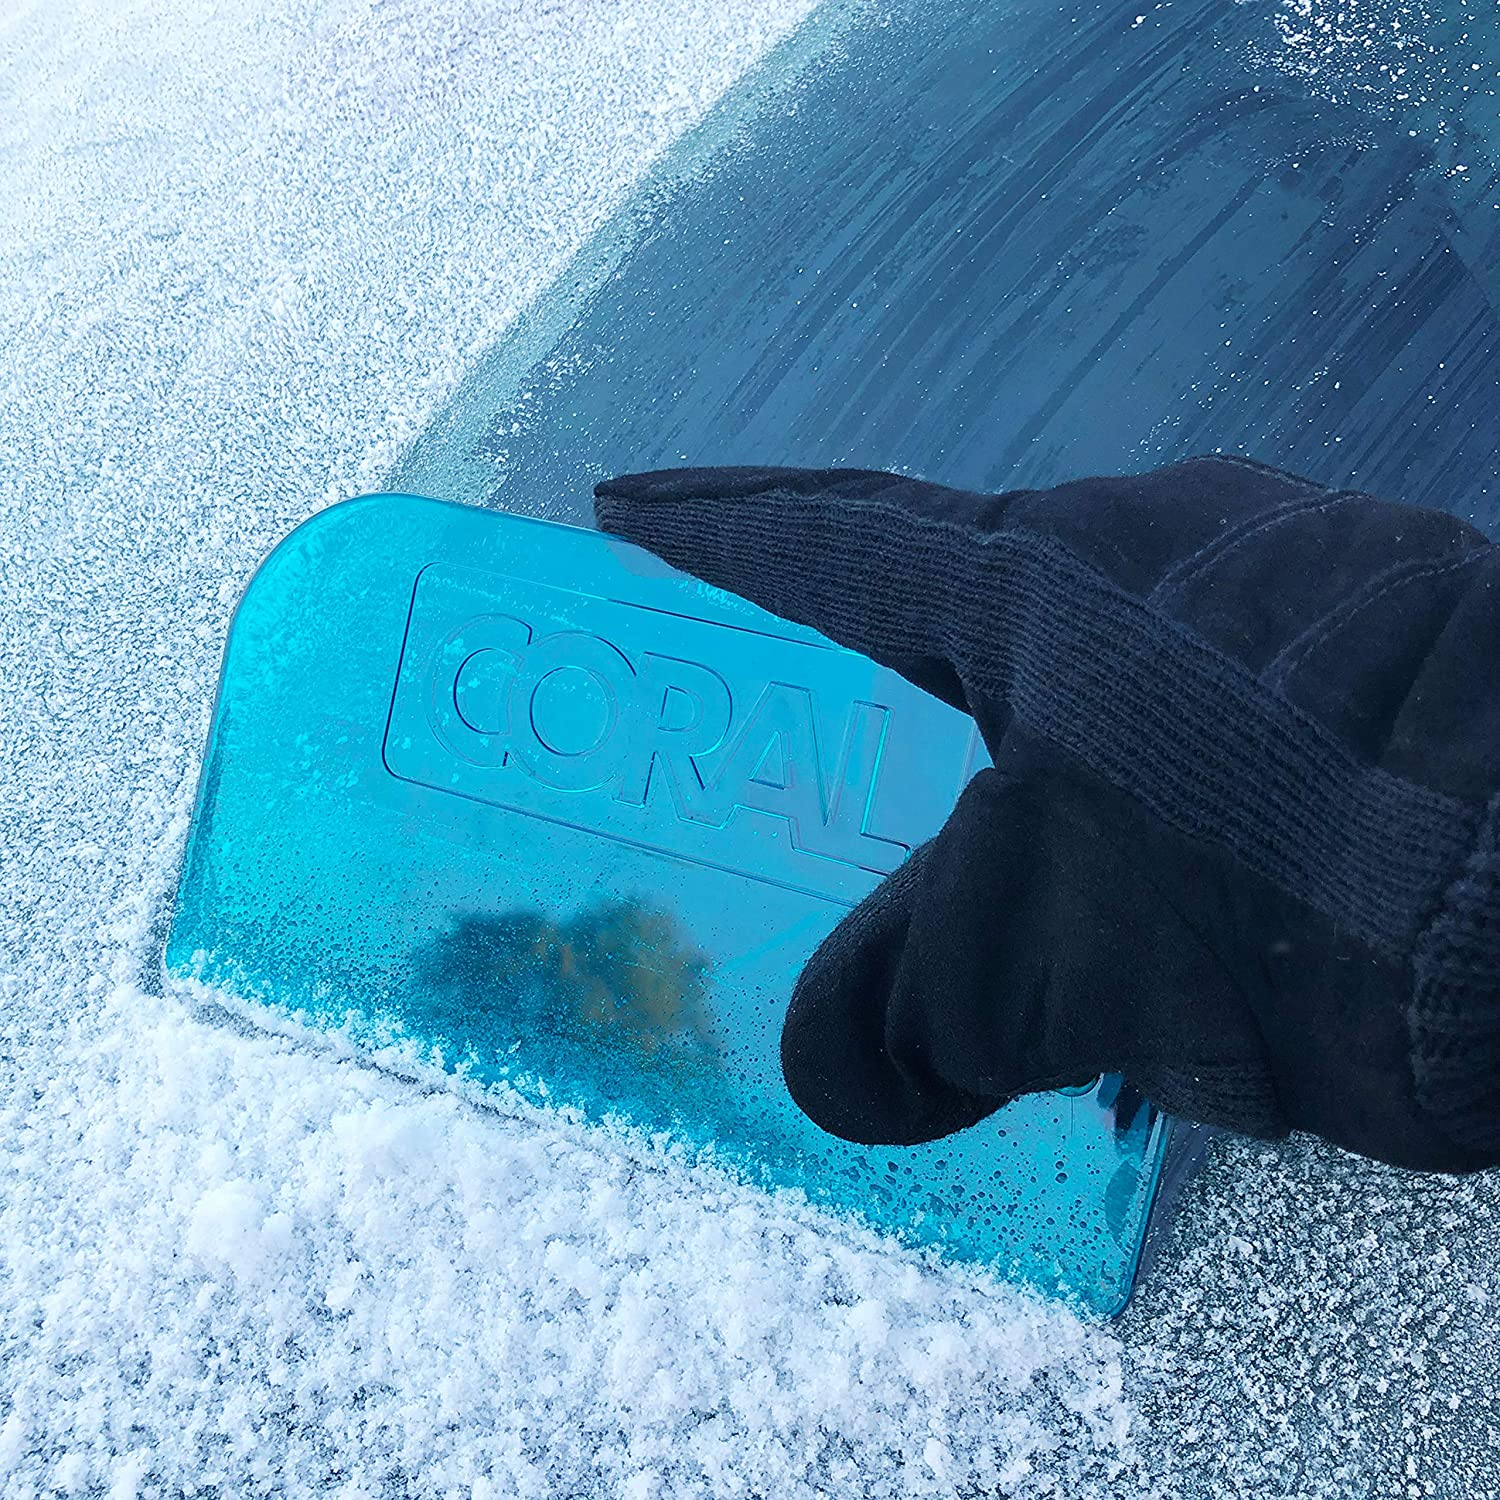 Blue Coral 69520 Ice Scraper Snow Remover and Rapid De-Icer for Car Windscreens The Original 8.2 Inch